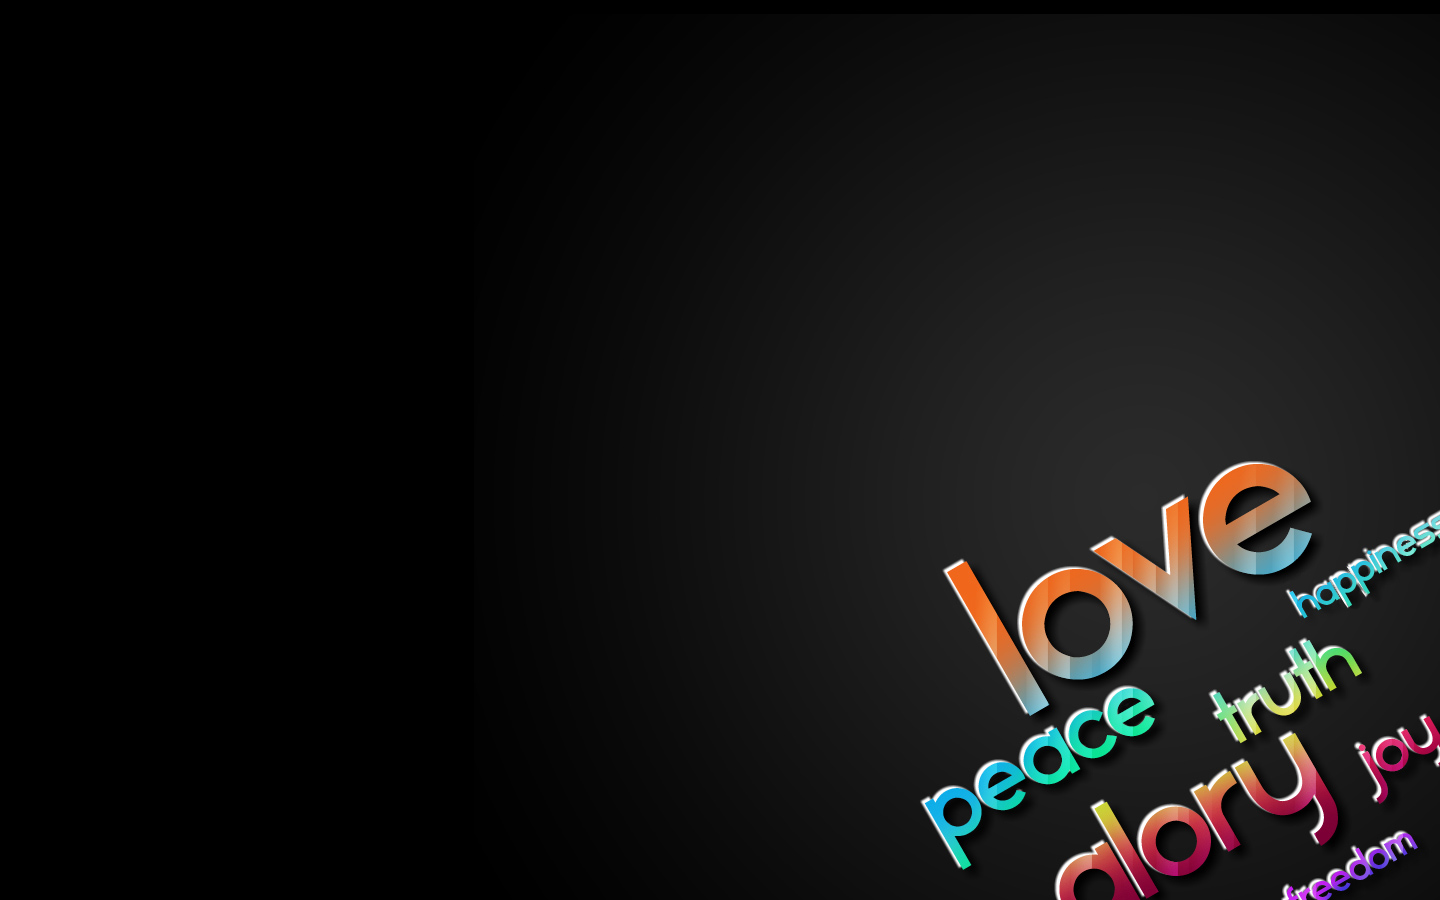 peace love happiness wallpaper 40404 hd wallpapers